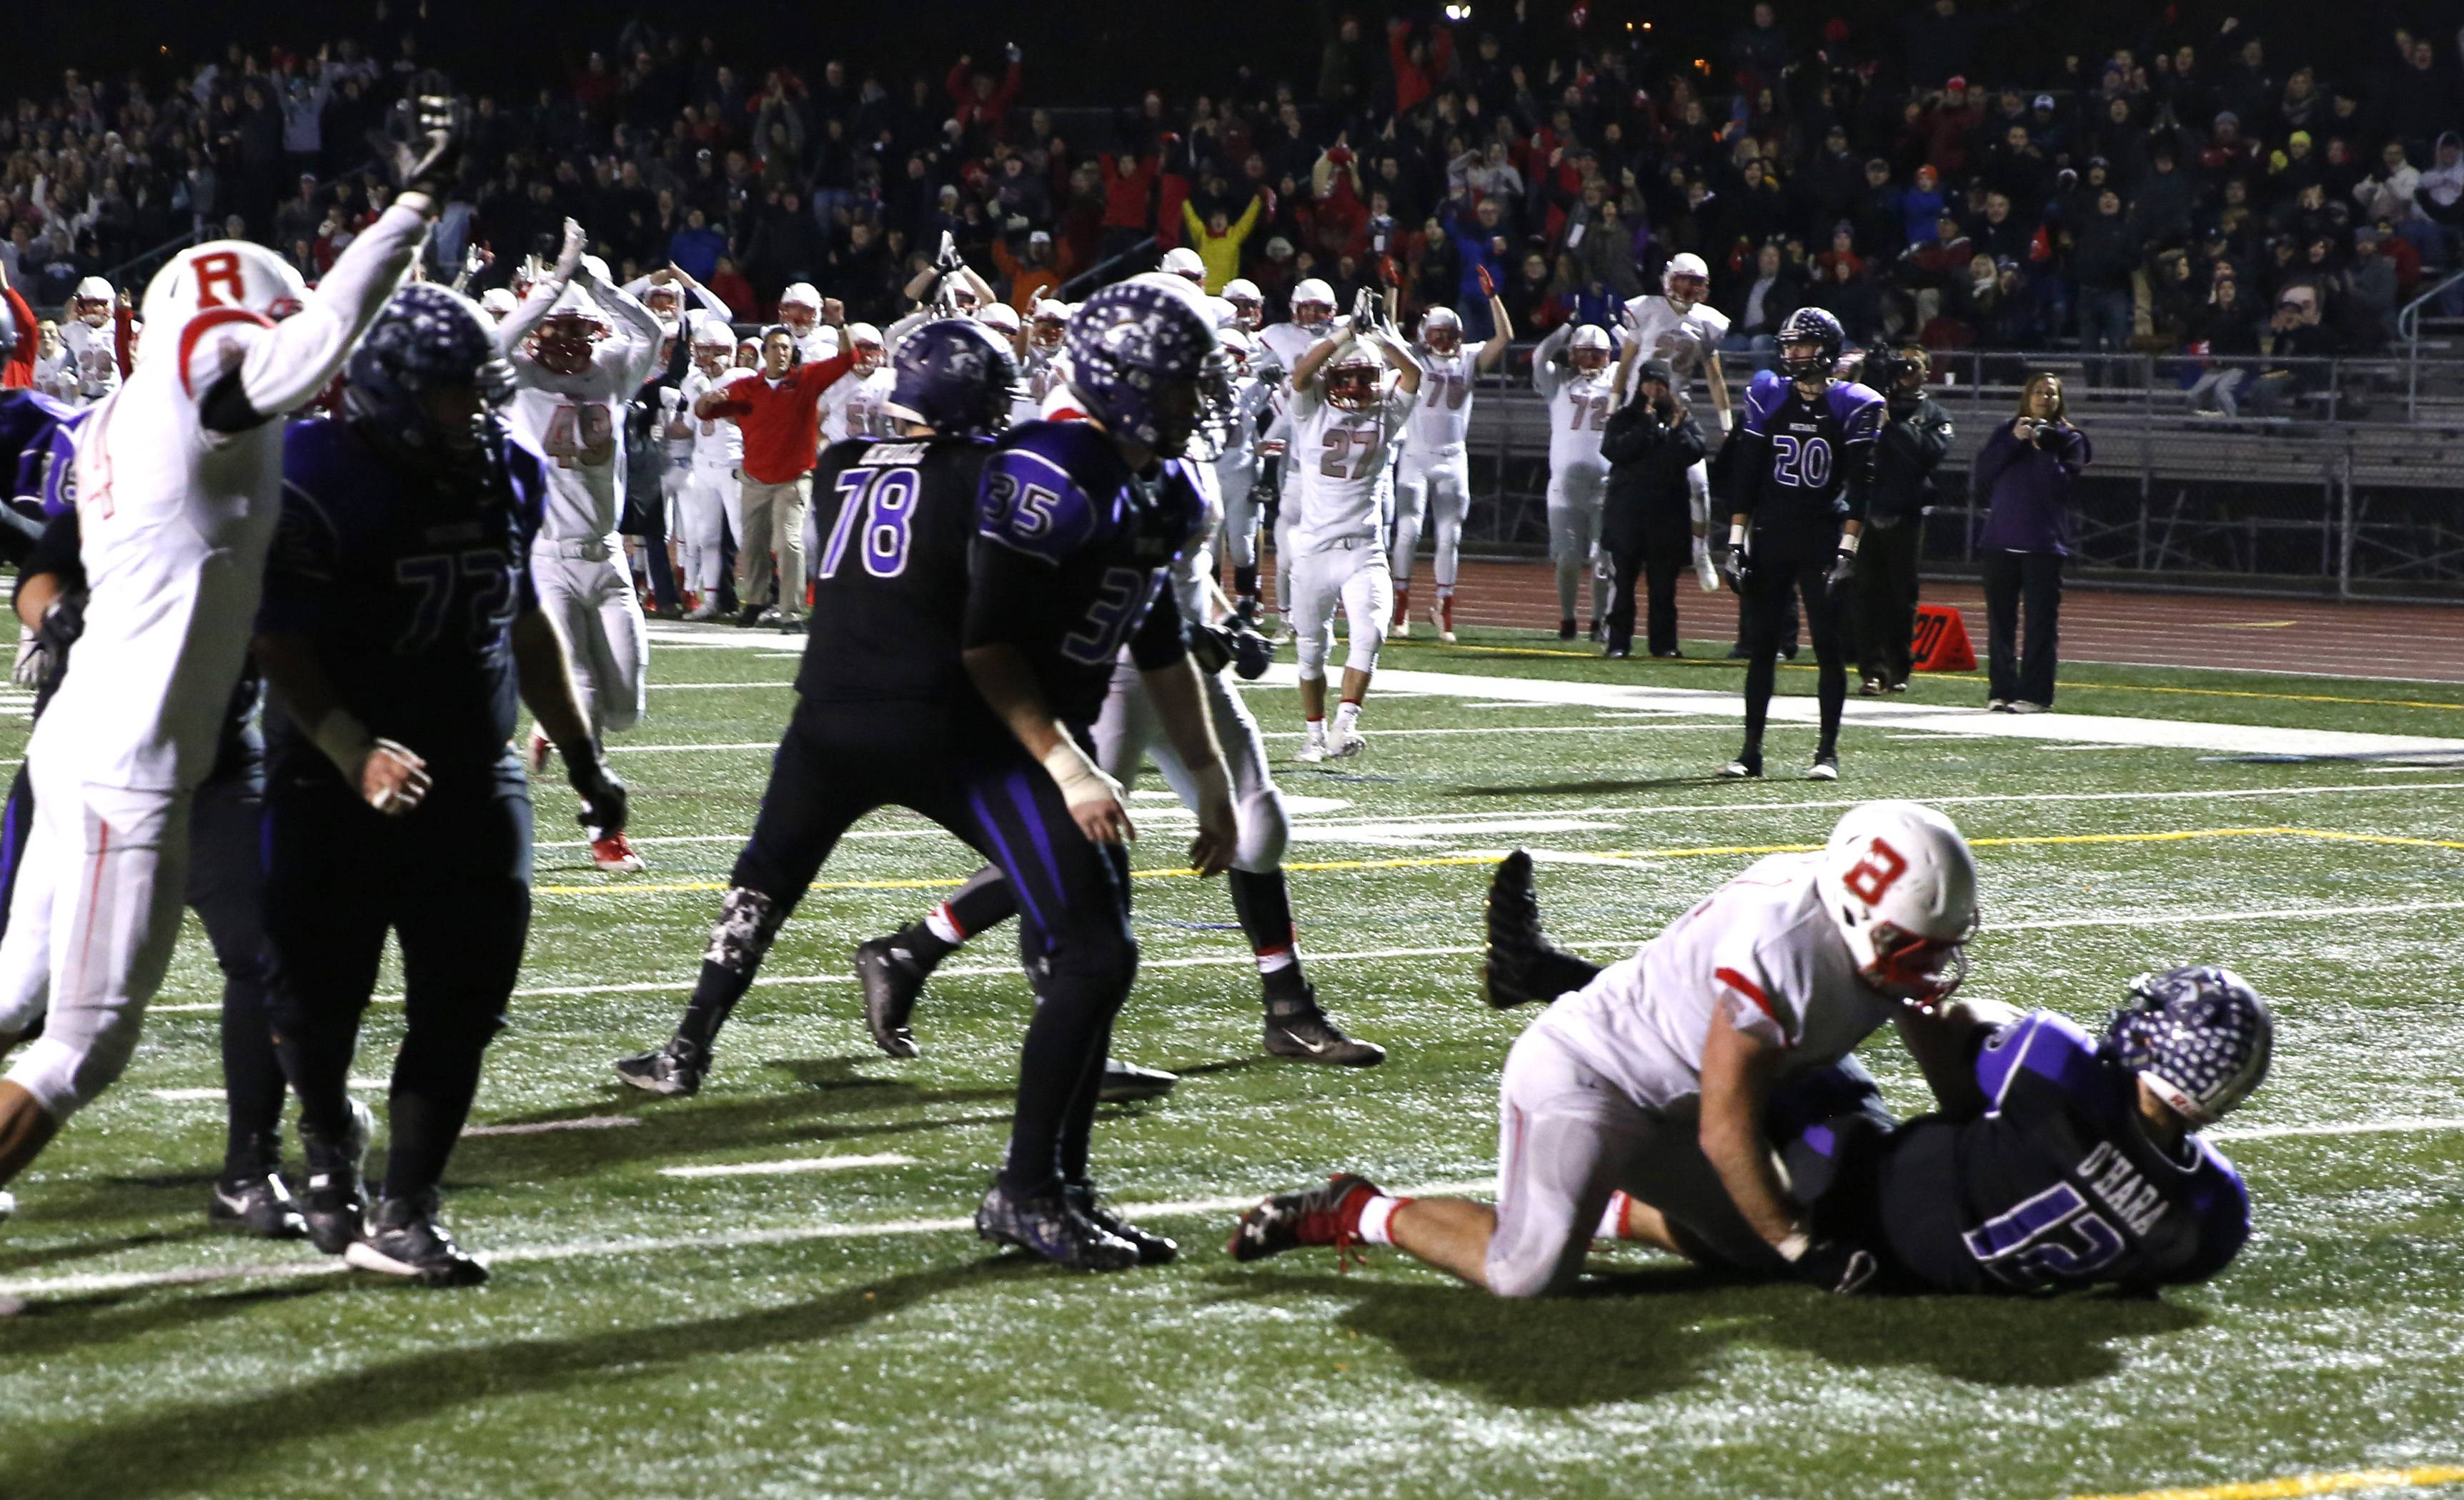 Rolling Meadows quarterback Asher O'Hara (12) is brought down for a safety in the second half against Benet Academy during Class 7A football action in Rolling Meadows.